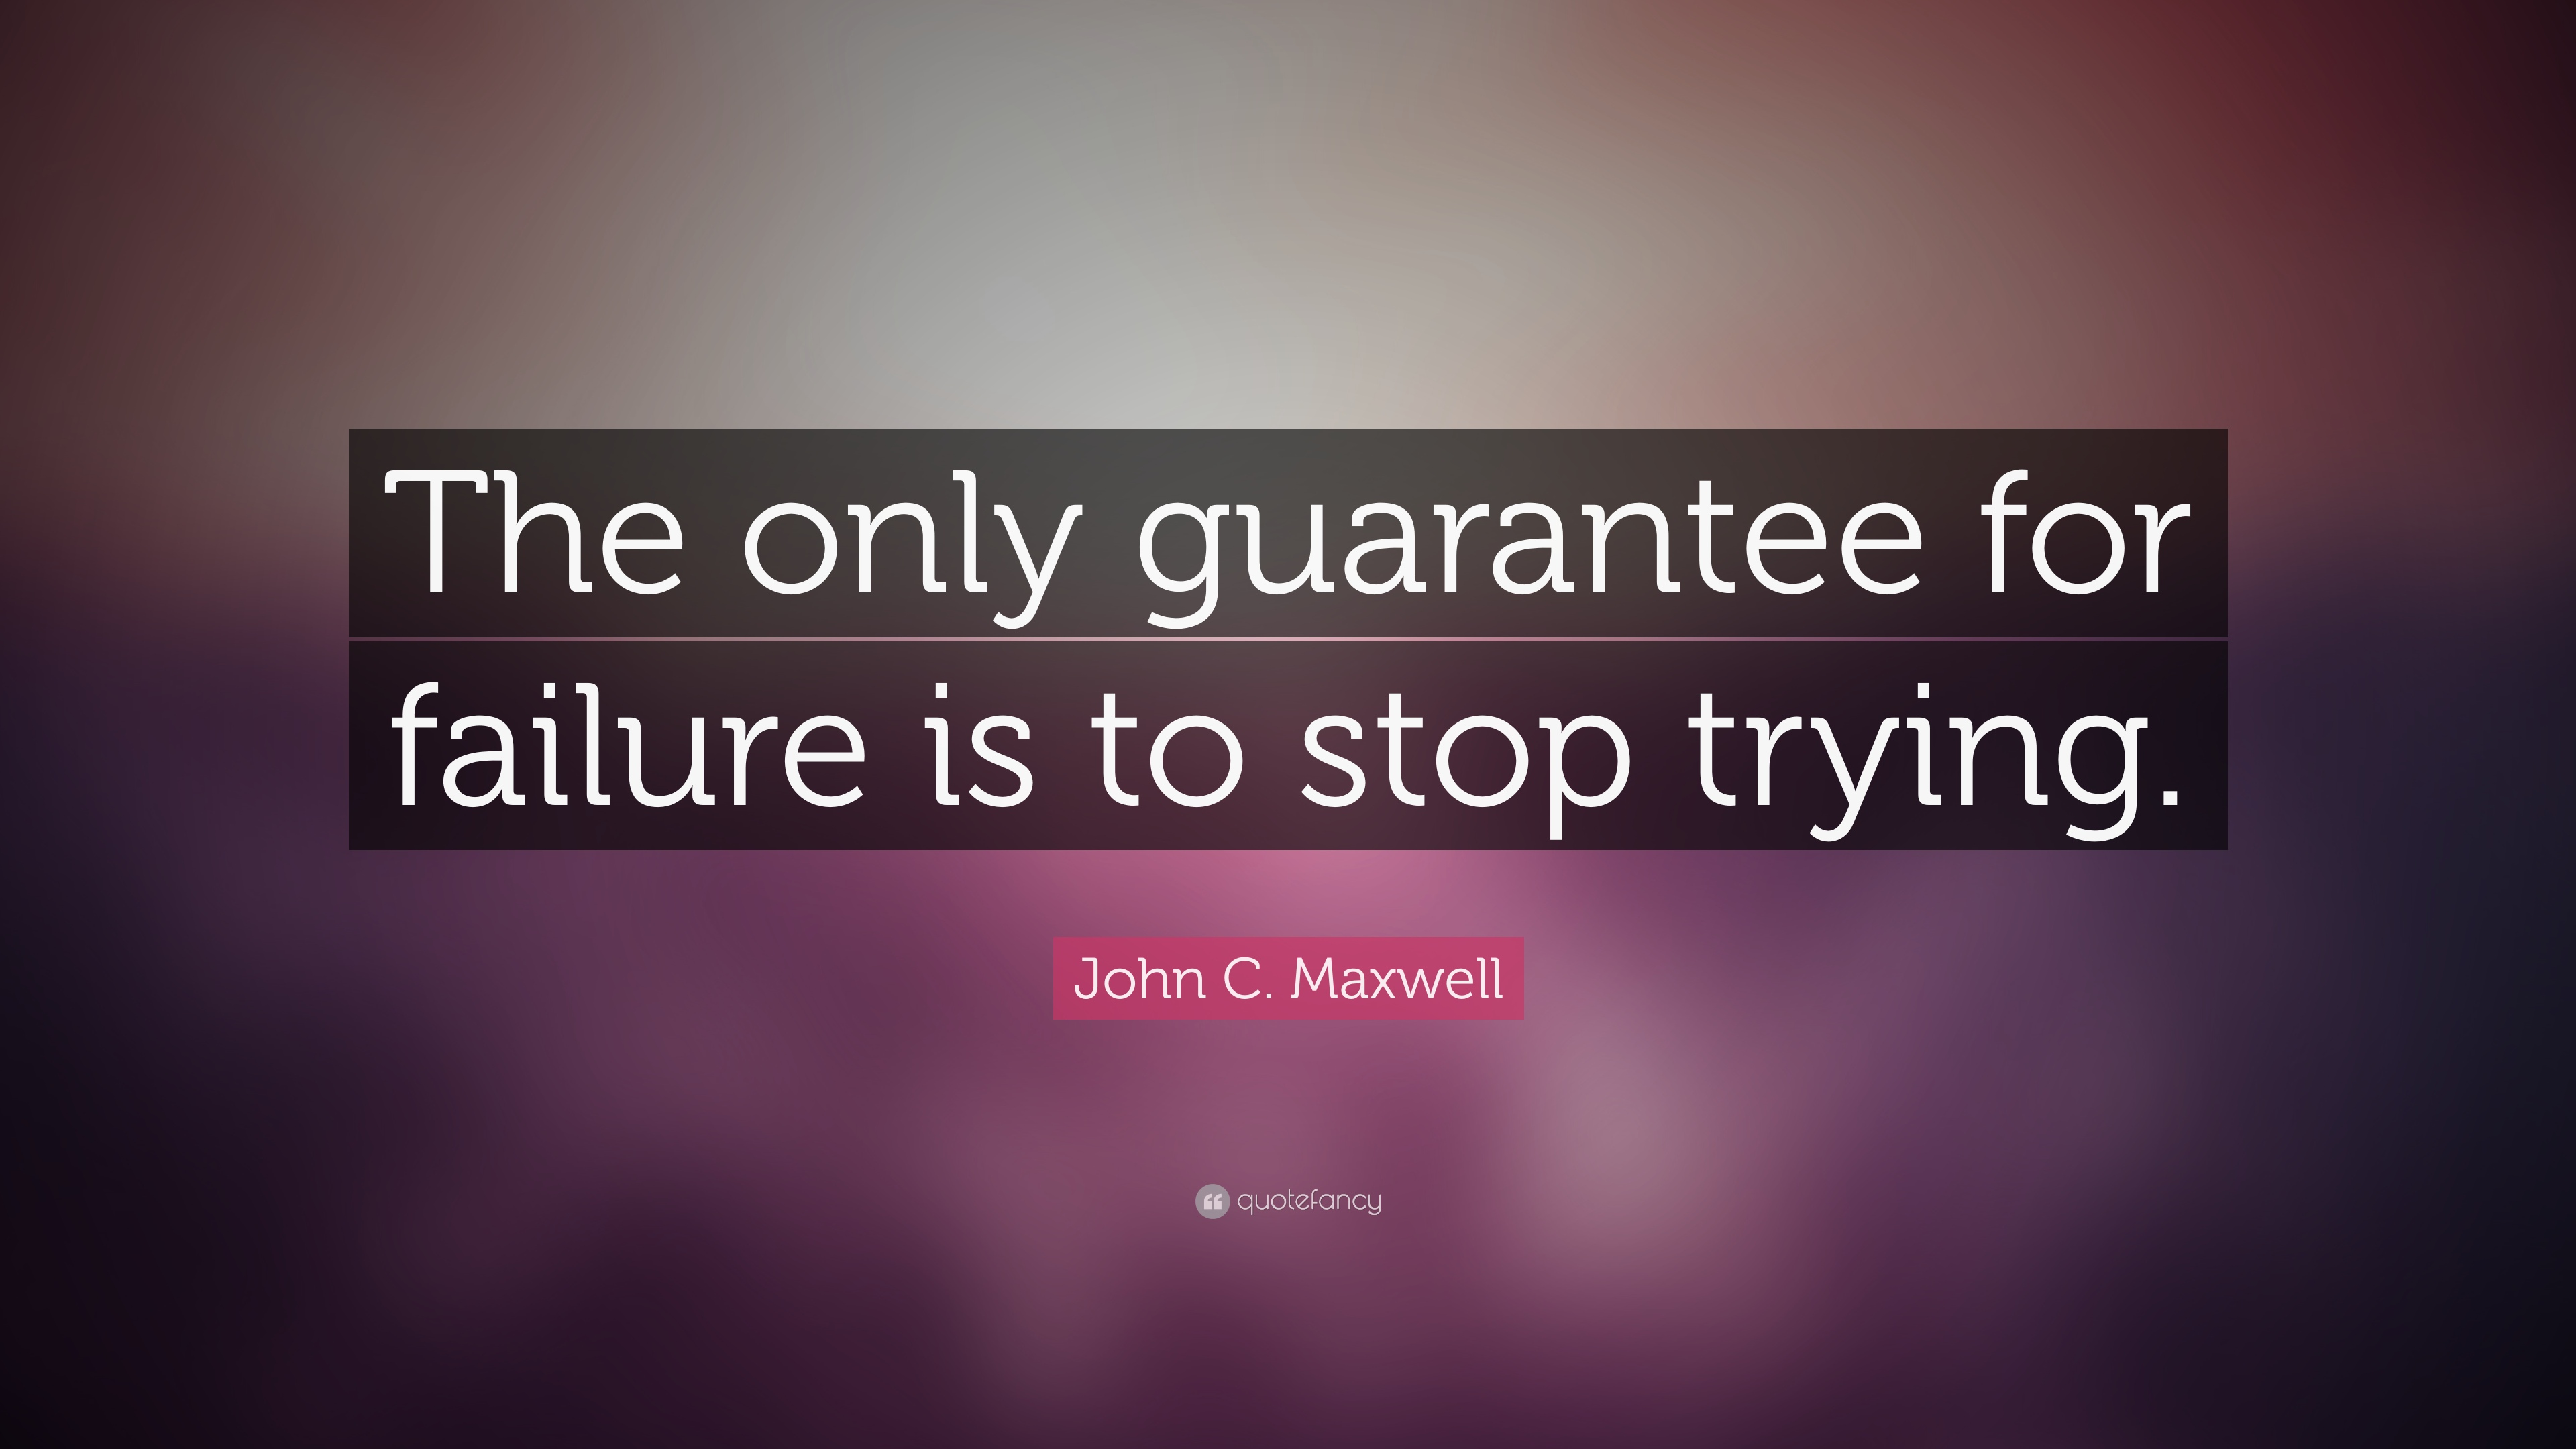 "John Maxwell Quotes John C. Maxwell Quote: ""The only guarantee for failure is to stop  John Maxwell Quotes"